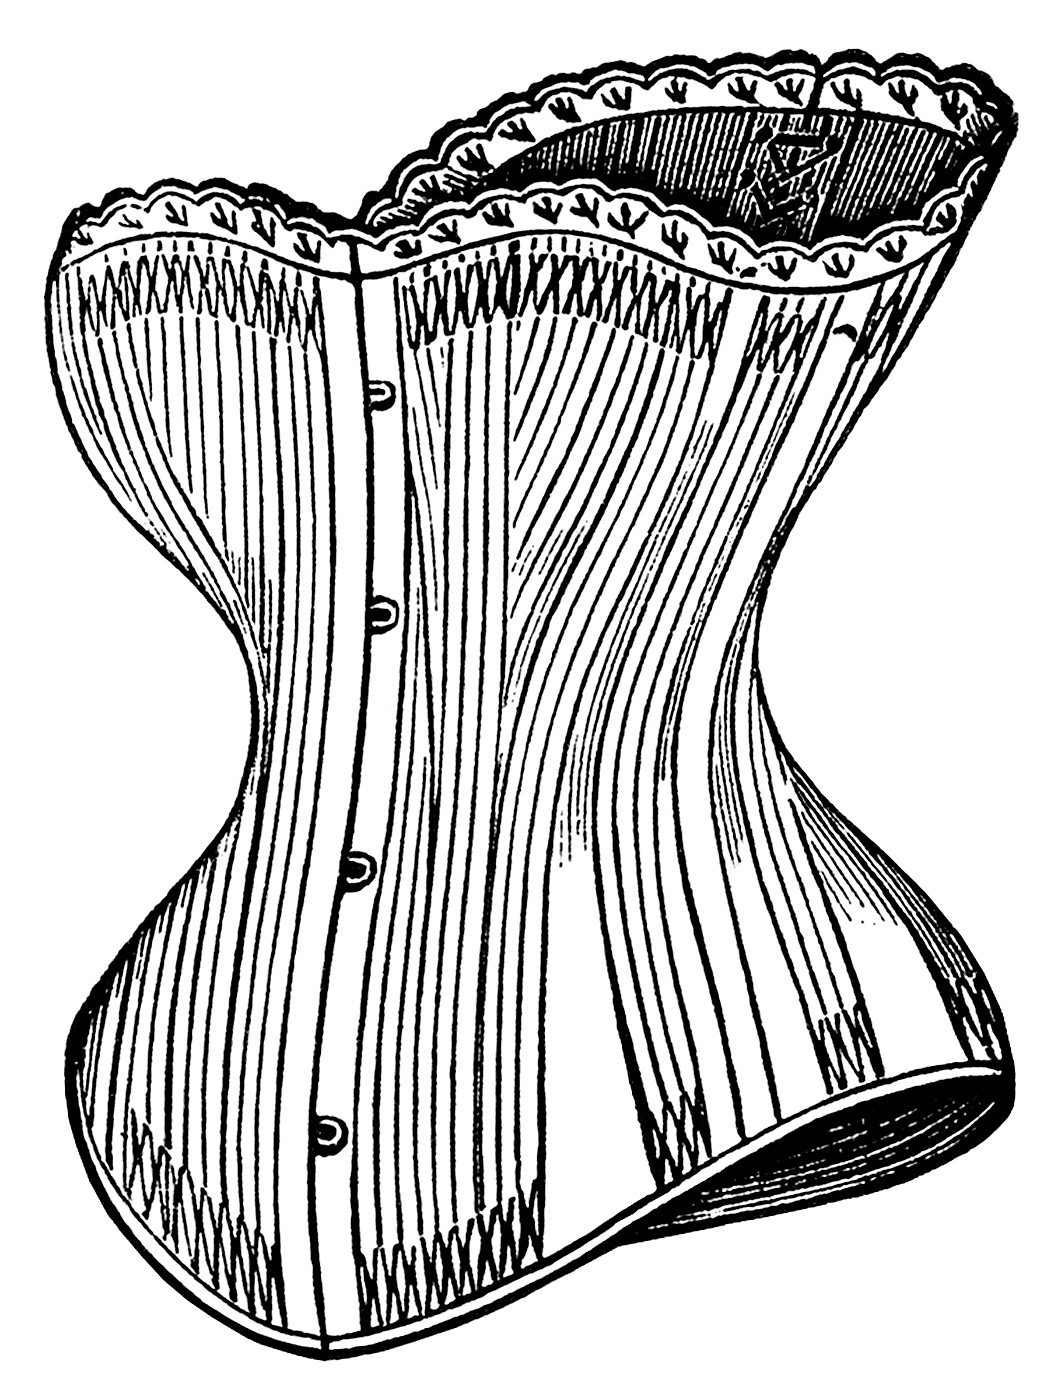 Black and white clipart corset jpg free stock Victorian Corsets Clip Art - Old Design Shop Blog jpg free stock